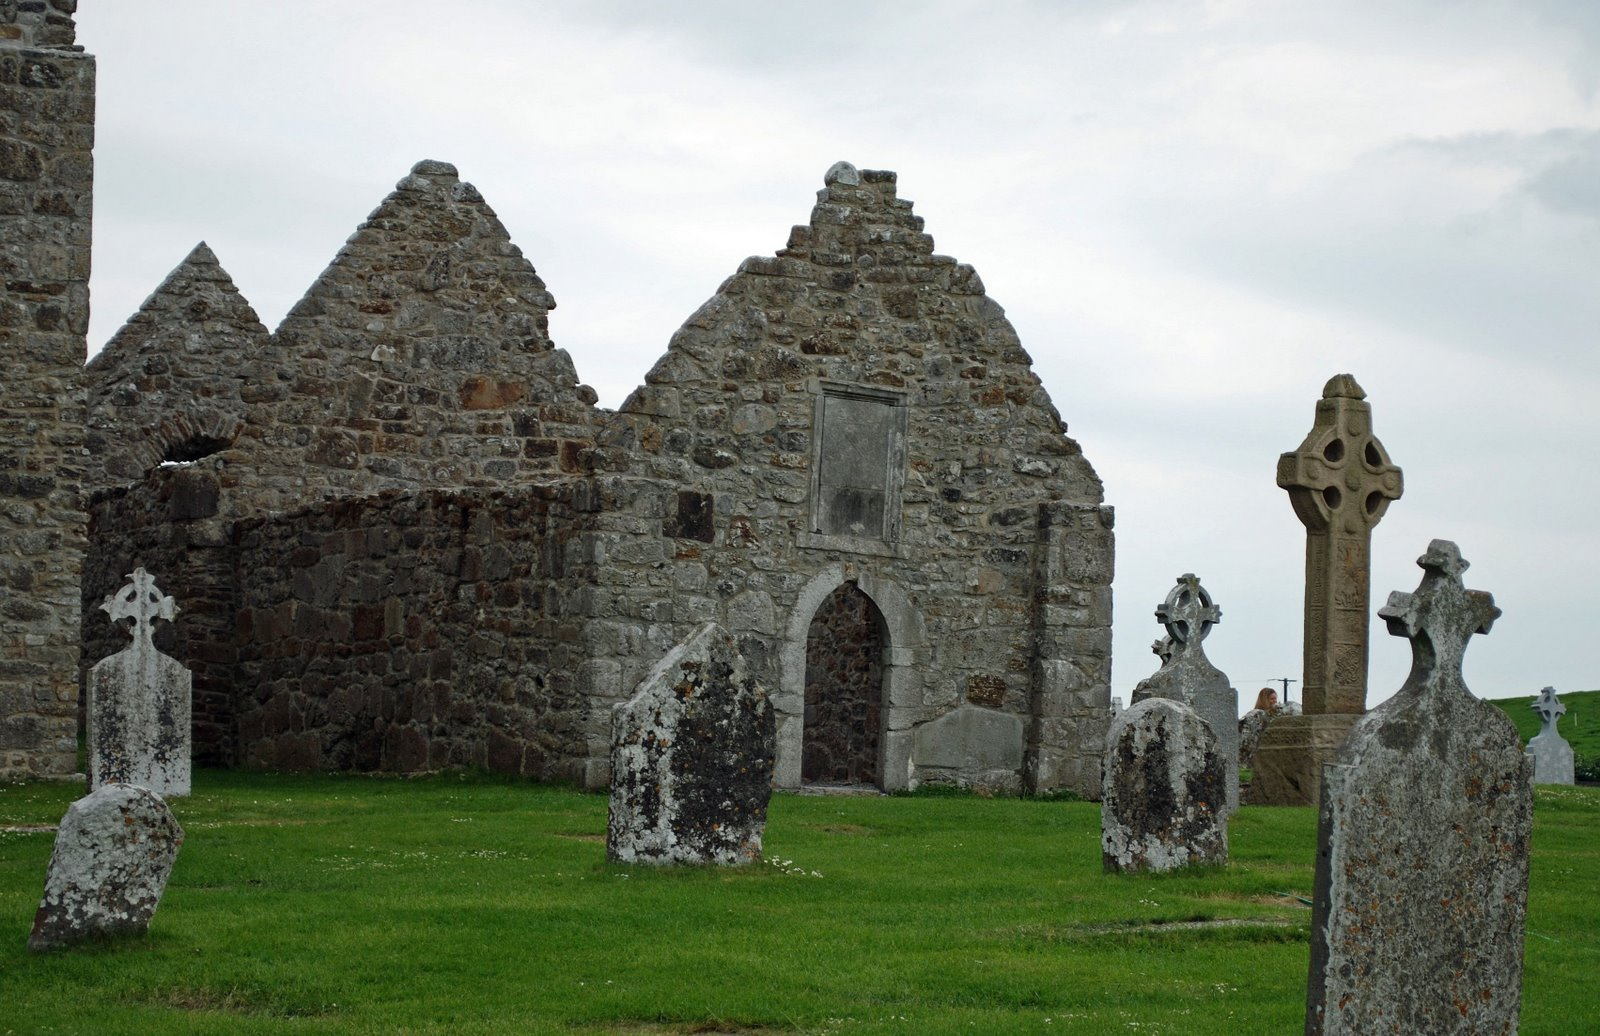 Temple Doulin at Clonmacnois